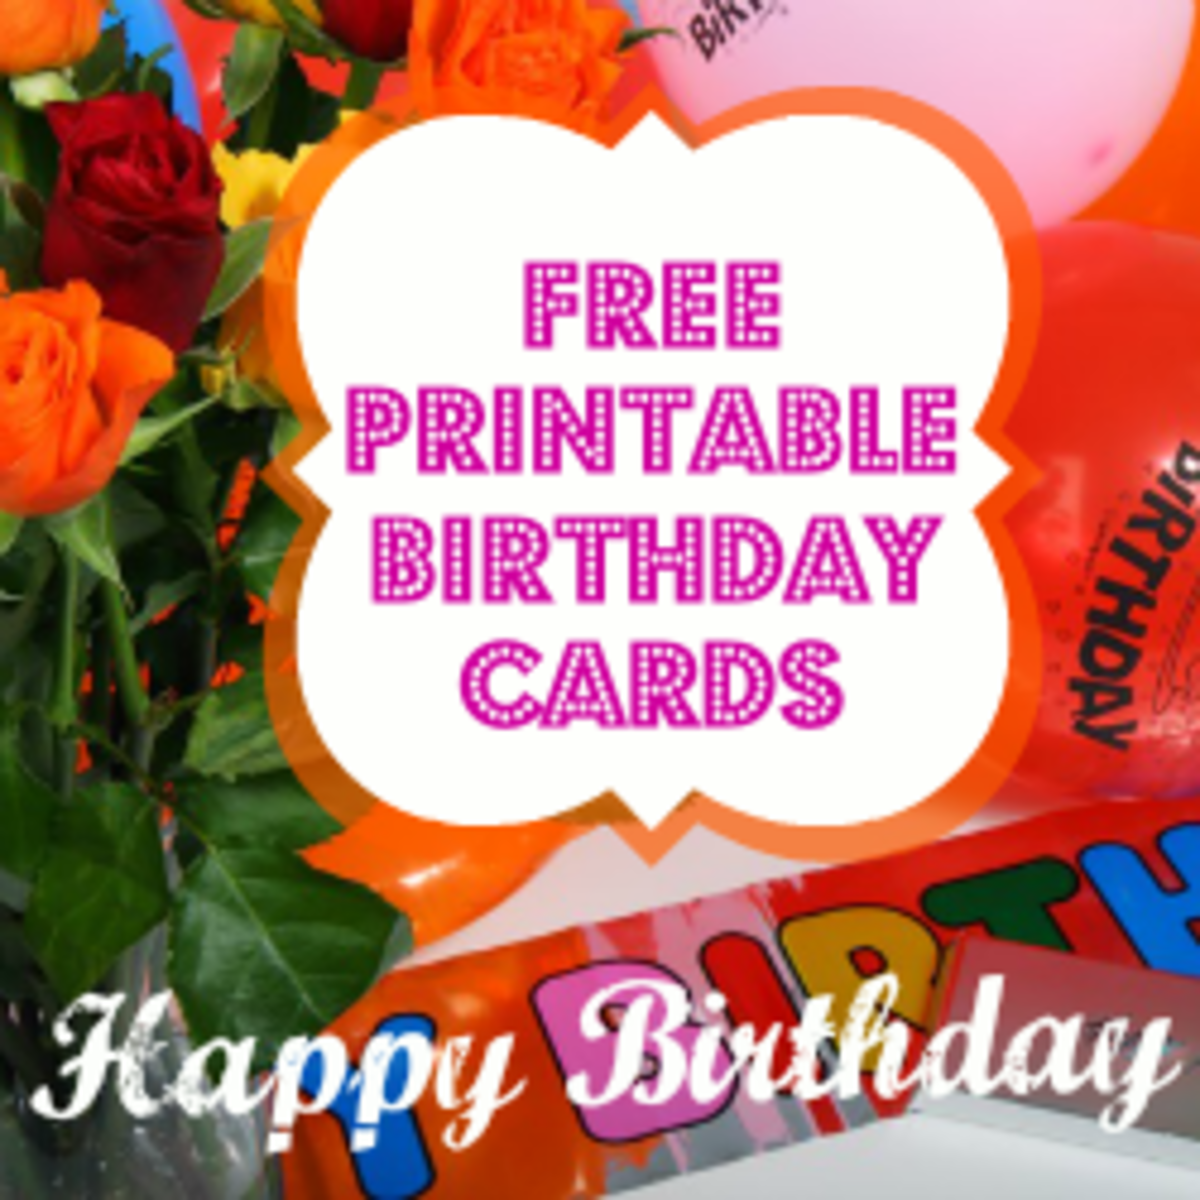 Birthday Card Template Printable  Free Printable Birthday Card Template